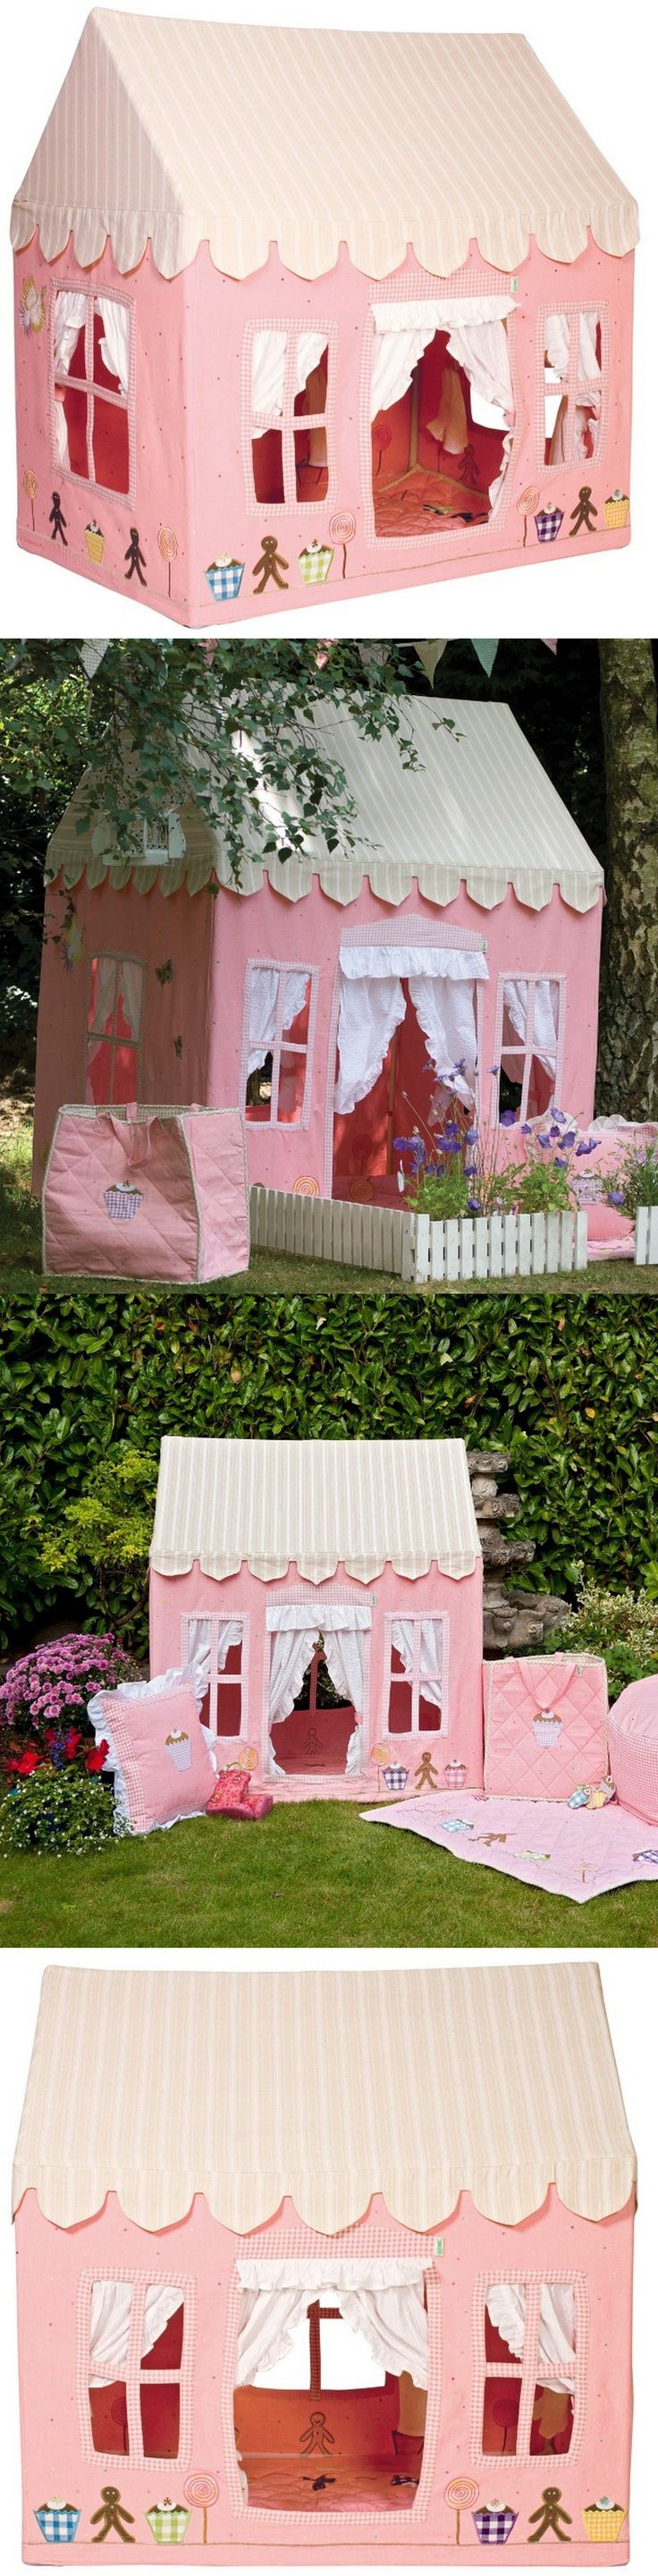 permanent playhouses 145995 playhouse outdoor little kids house